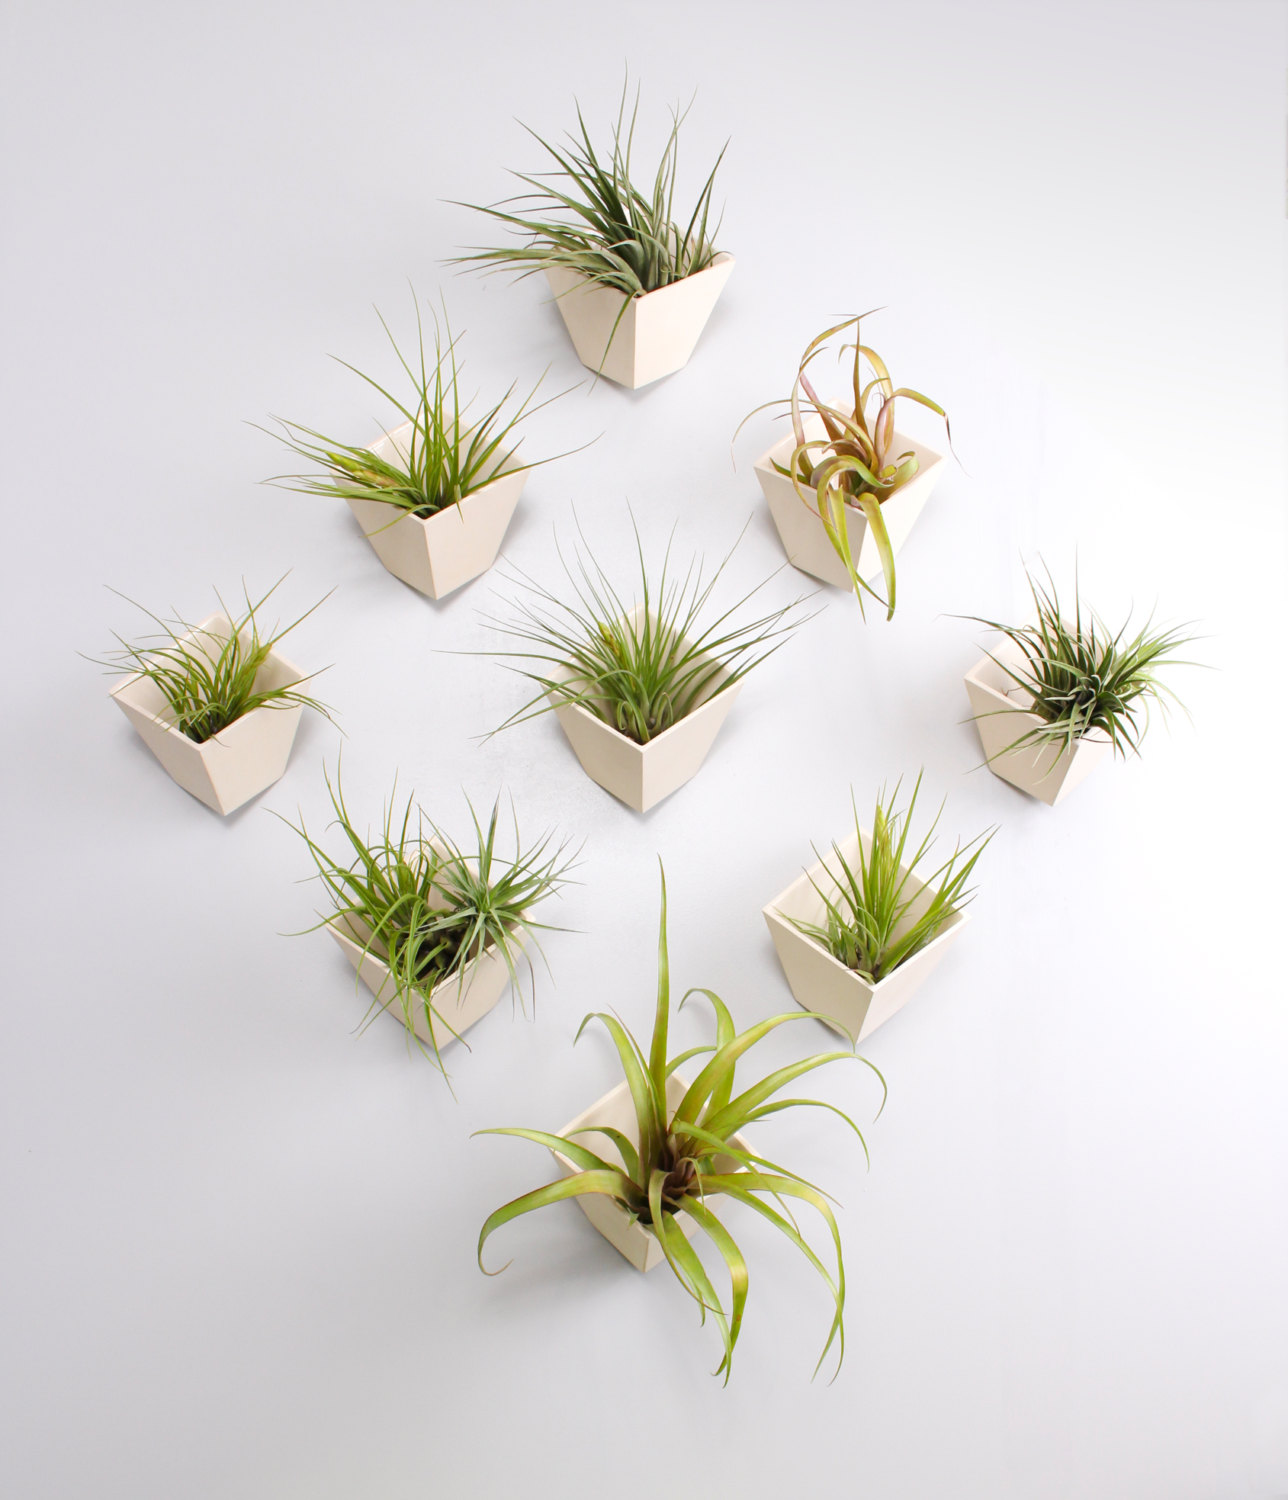 50 unique pots planters you can buy right now for Air plant planters